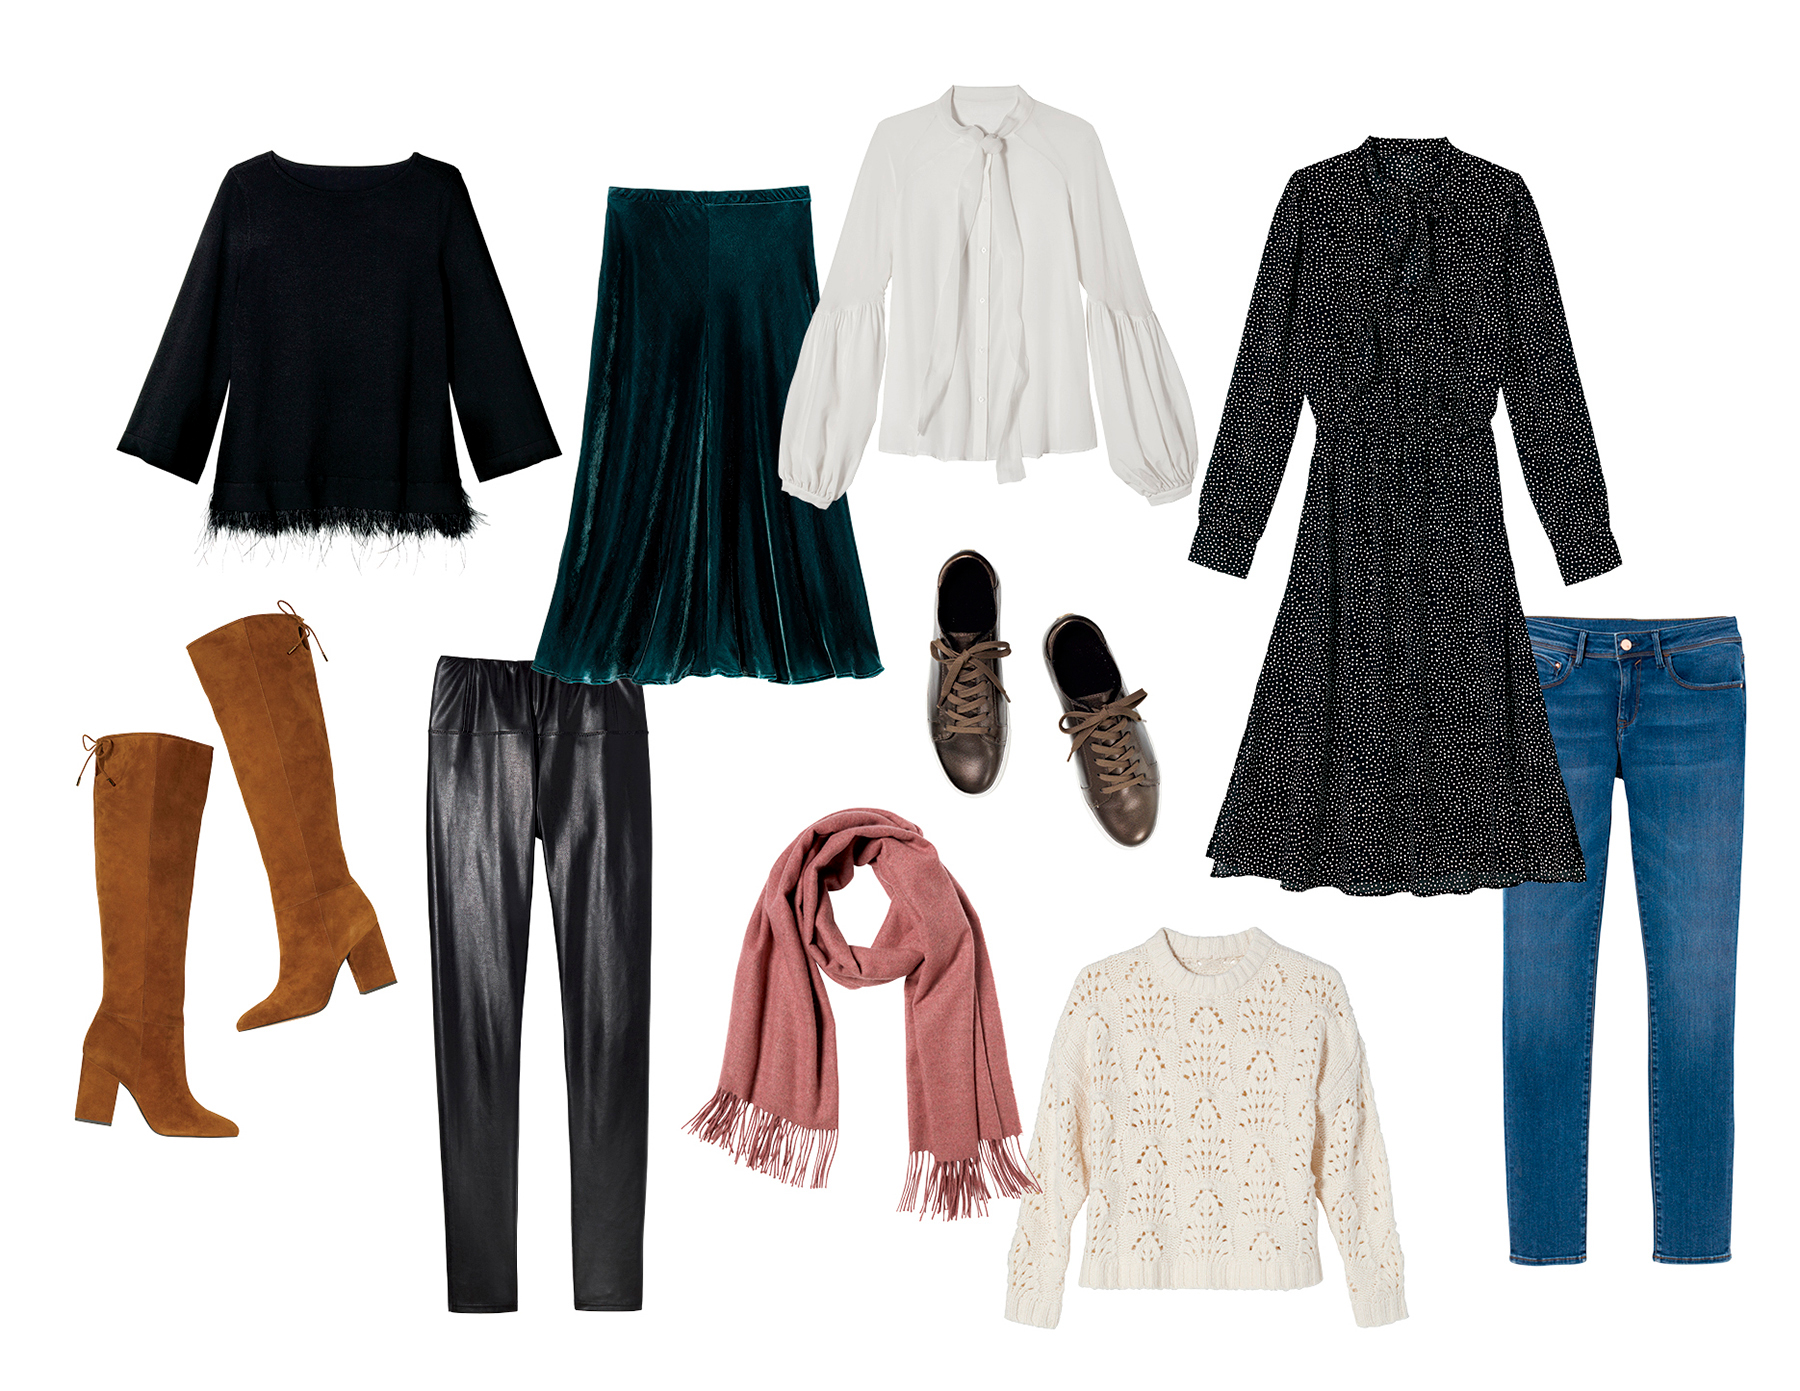 Holiday Wardrobe That Fits in a Carry-On